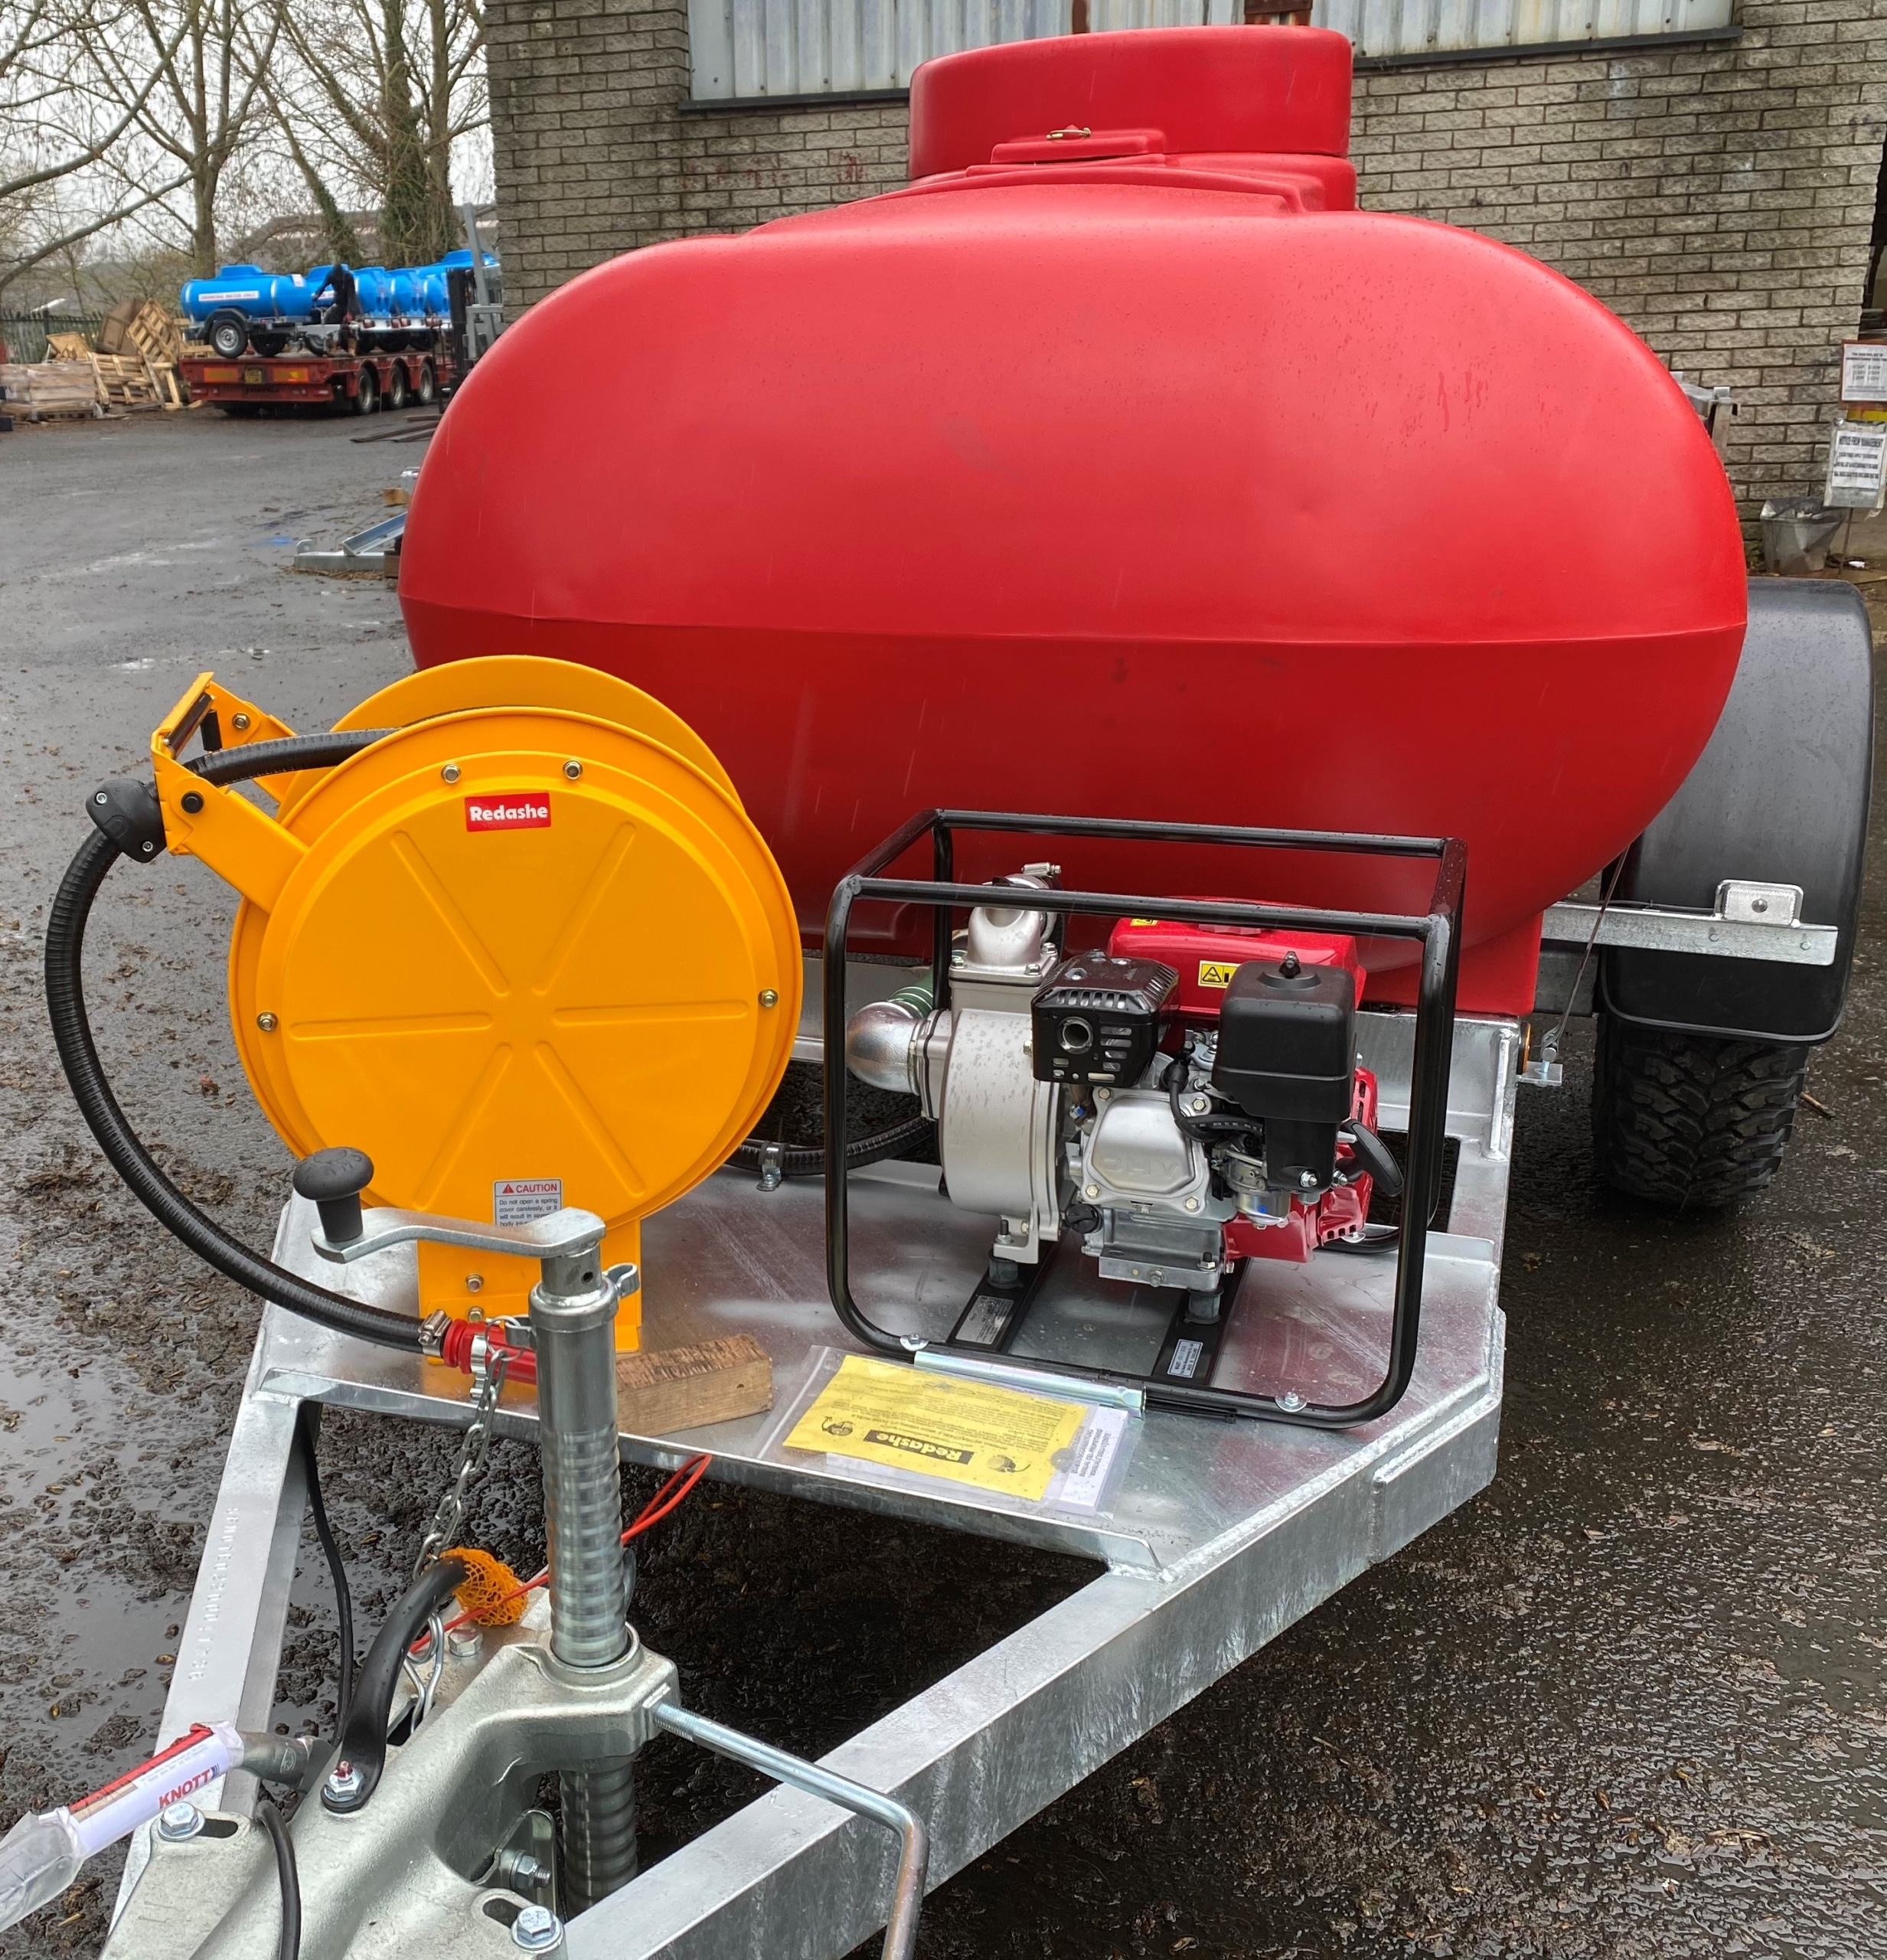 2000 Litre Water Bowser With Hose Reel And Water Pump For Fire Fighting